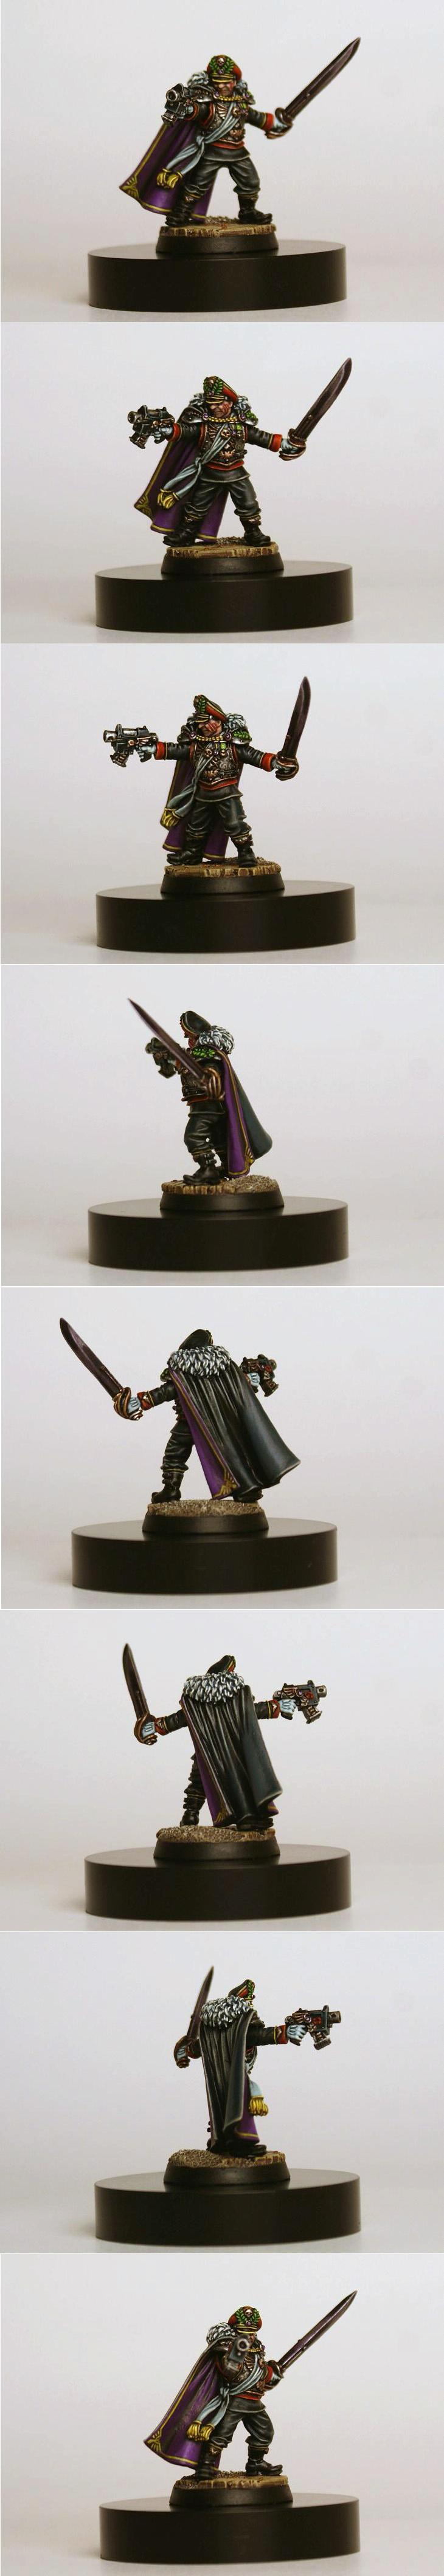 Bolt Pistol, Commissar, Detail, Freehand, Imperial Guard, Layering, Lord Commissar, Power Sword, Warhammer 40,000